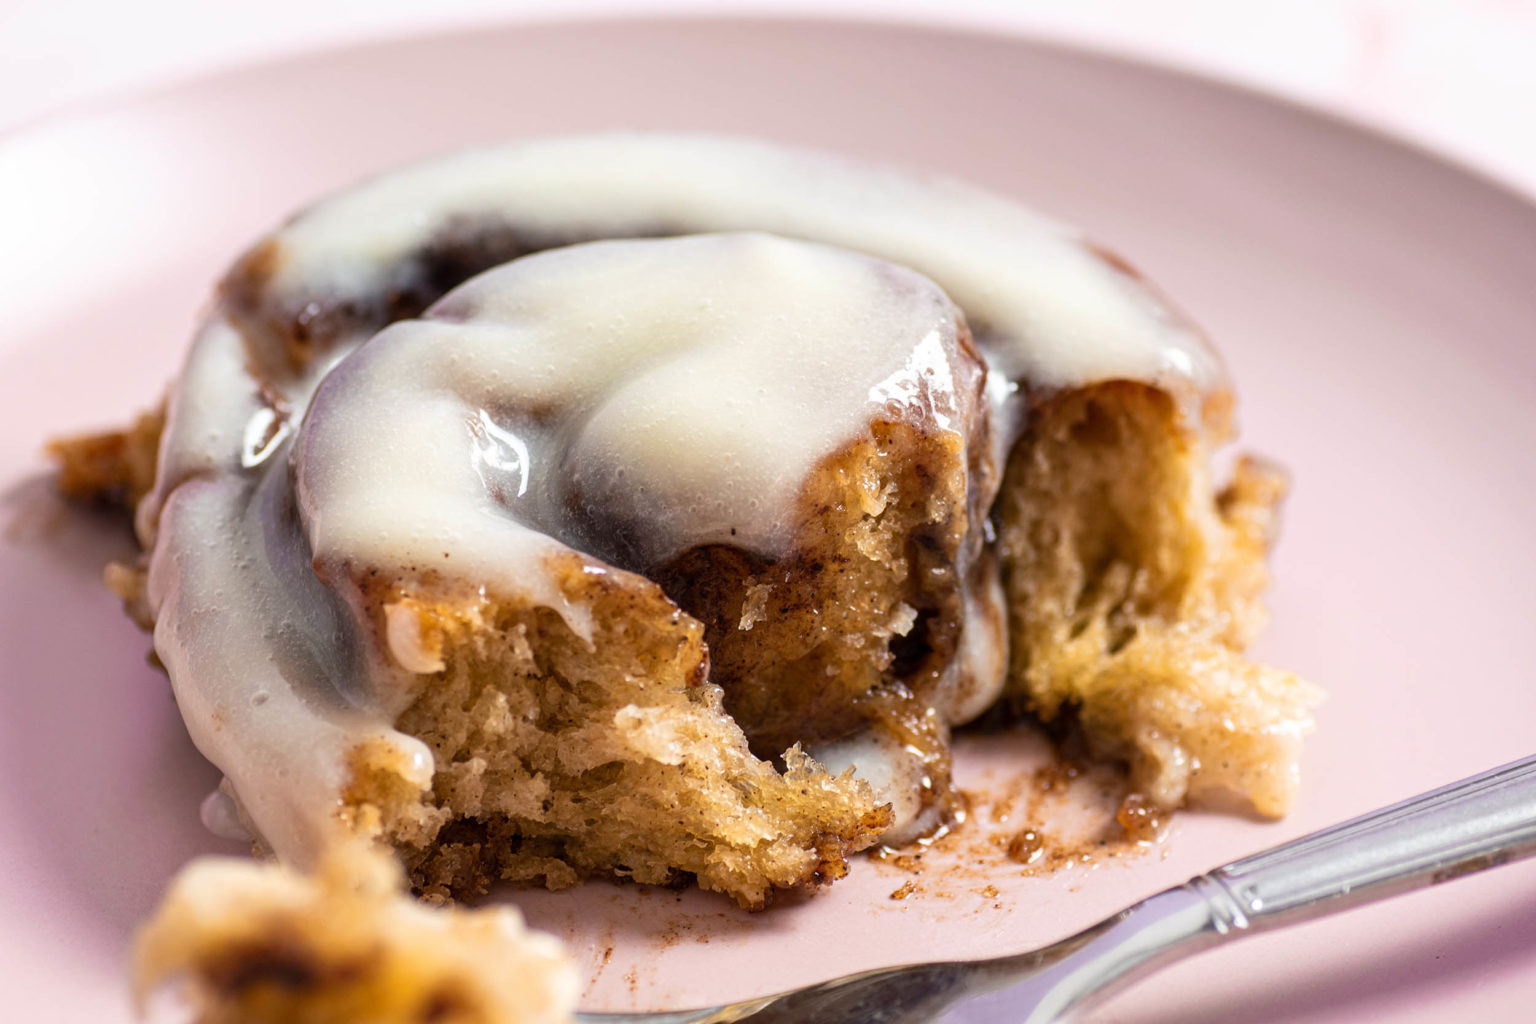 Close-up of cinnamon roll with cream cheese frosting